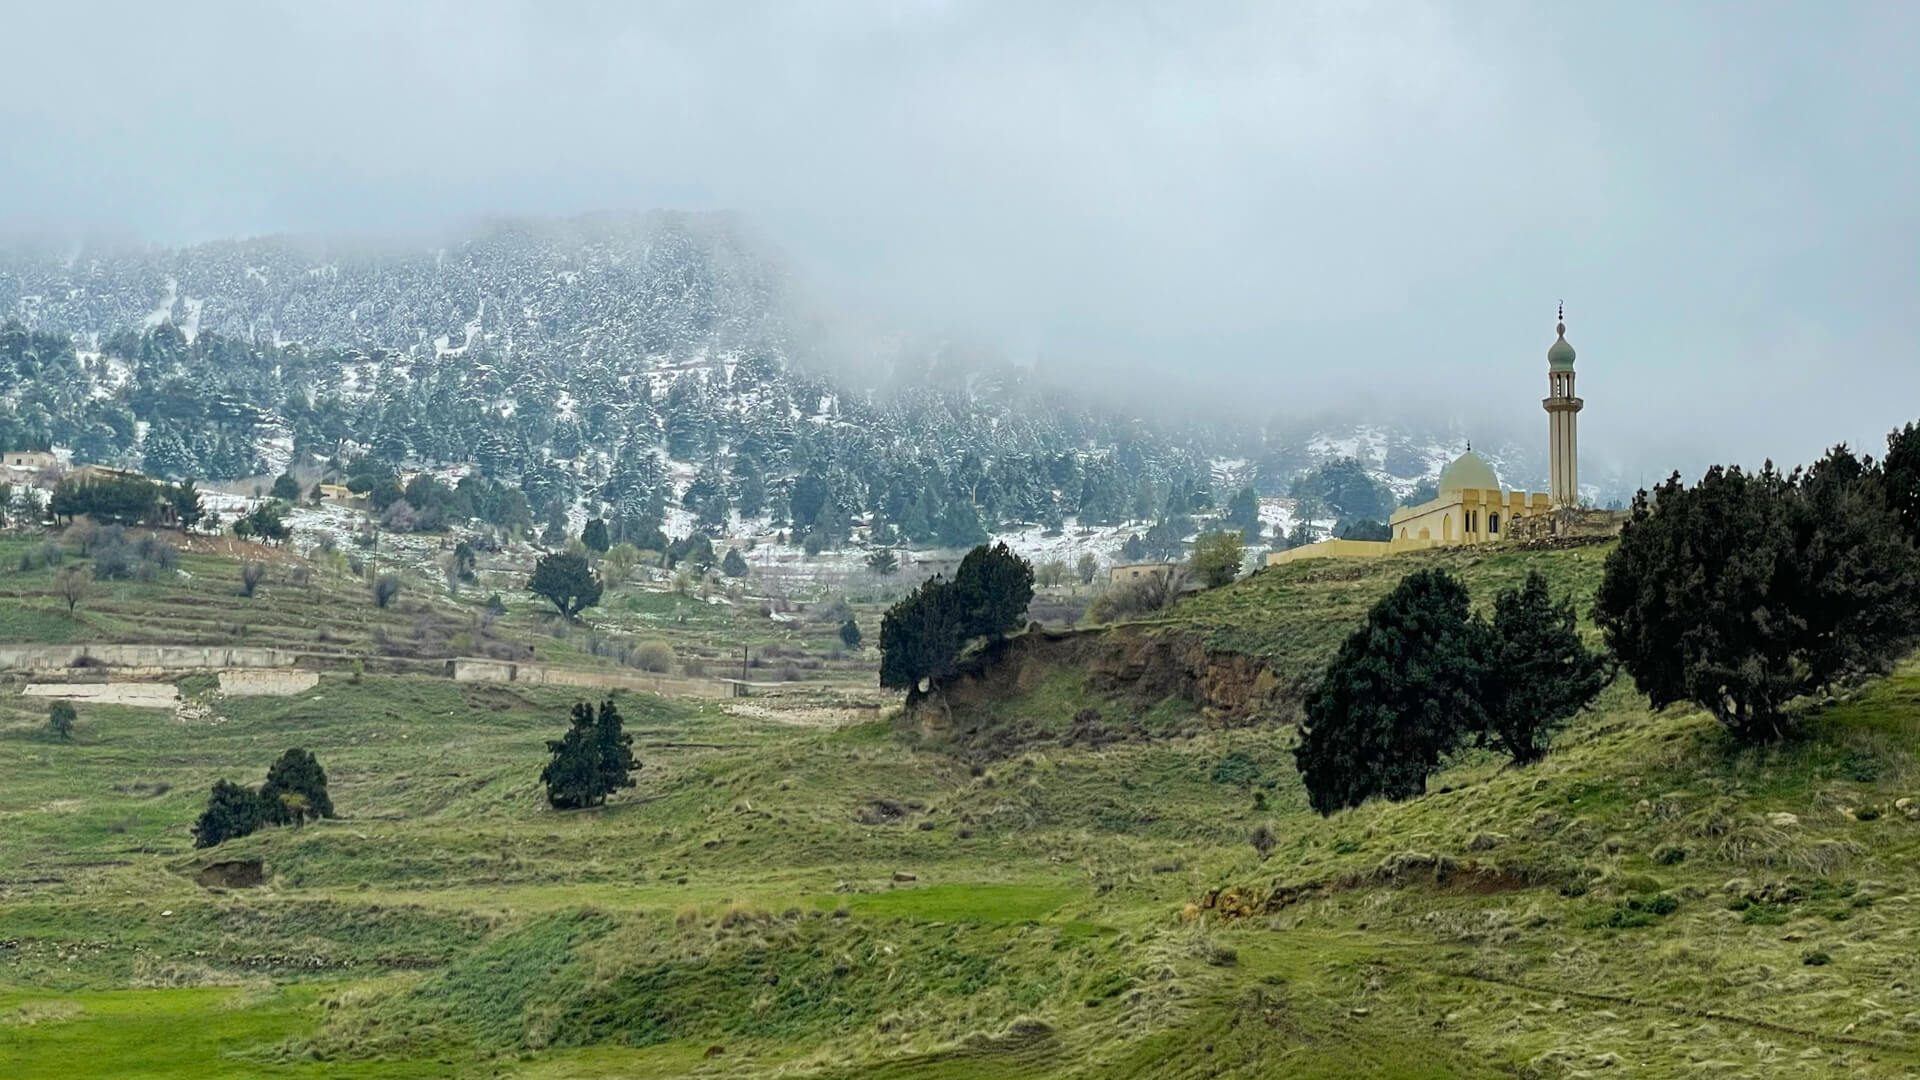 Green pastures with another mountain covered in snow rising in the distance and a mosque standing on a small hill in front.